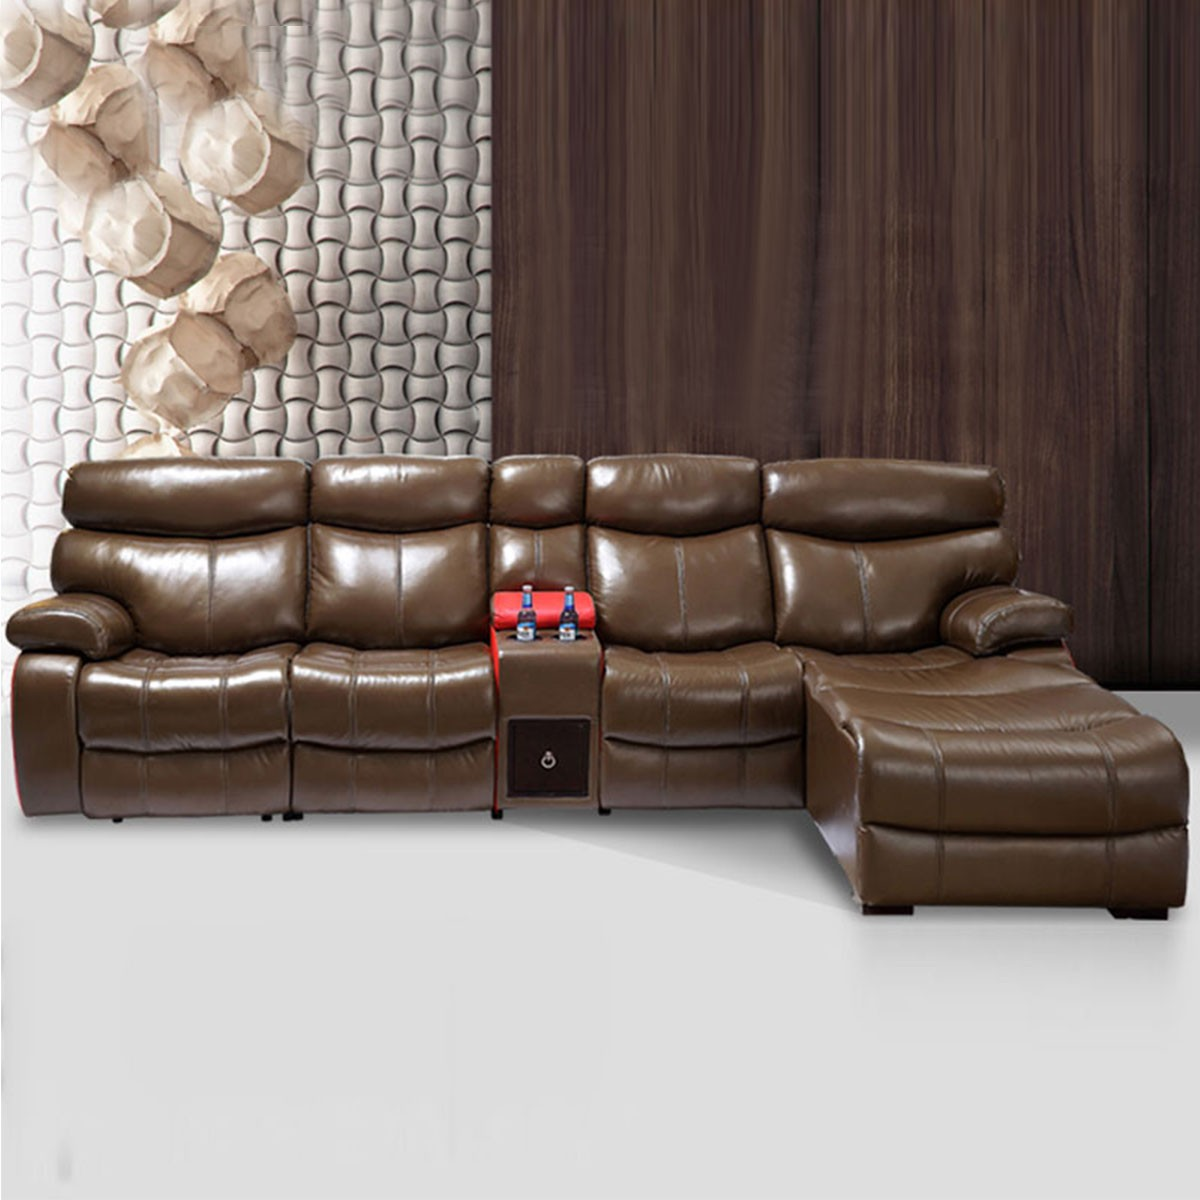 Dark Brown Multi-functional Recliner Sectional Sofa in Top Grain Leather with Cup Holder Console and Left-facing Chaise (LH-6045-2)